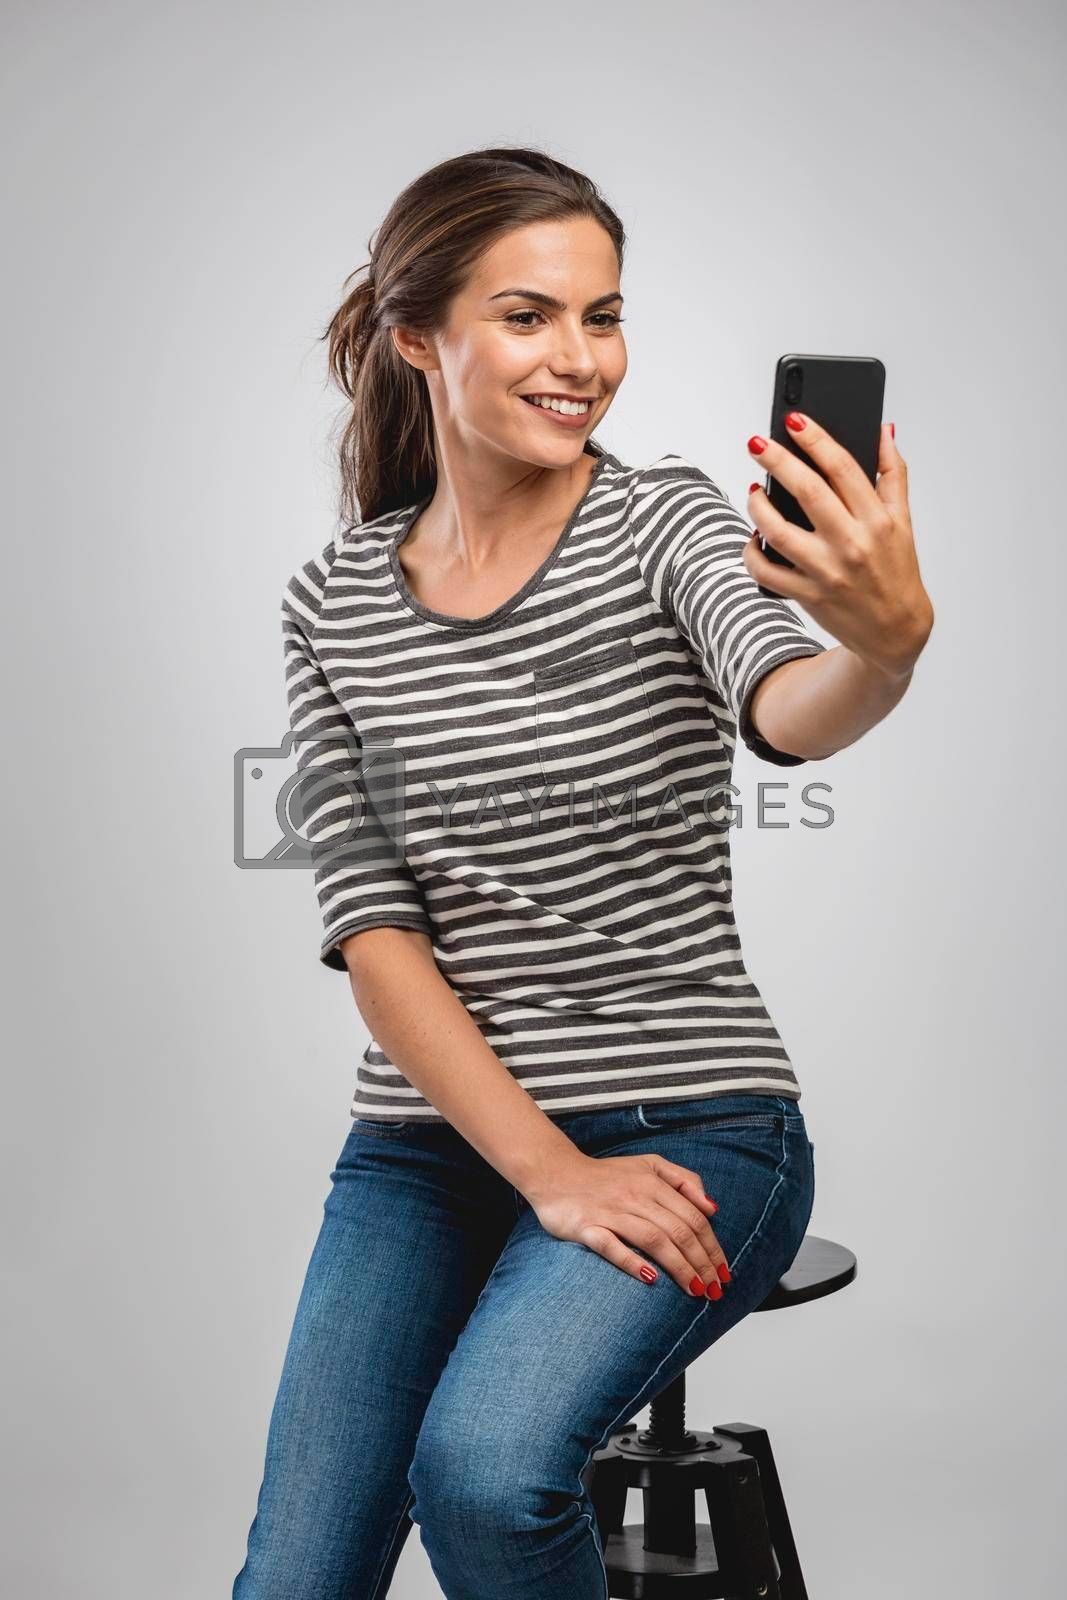 Royalty free image of A selfie for my social networks by Iko